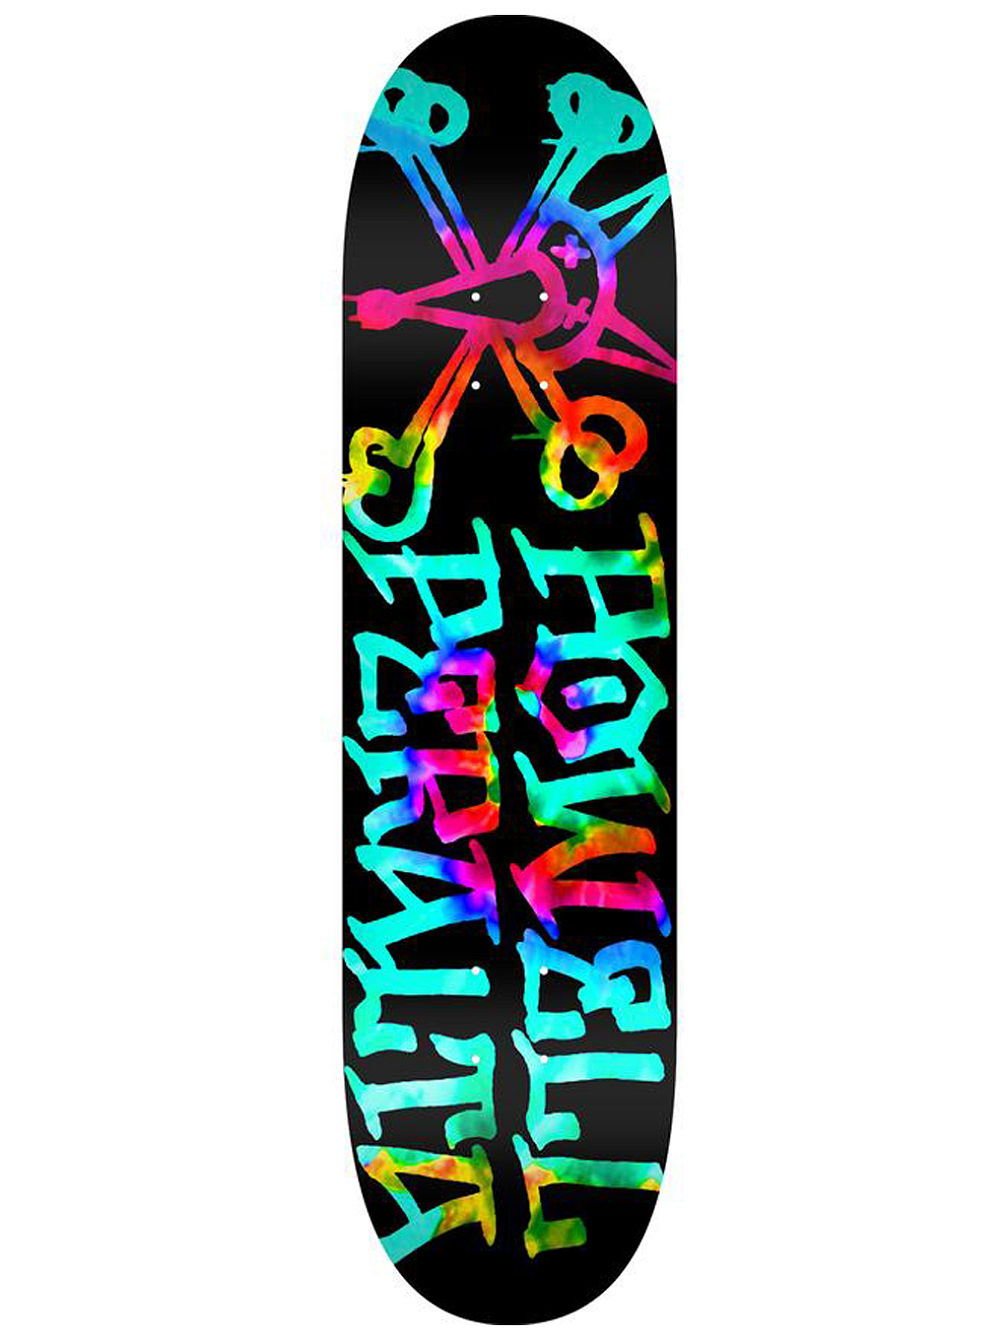 Vato Rat Tie-Dye Birch 7.5 Skate Deck